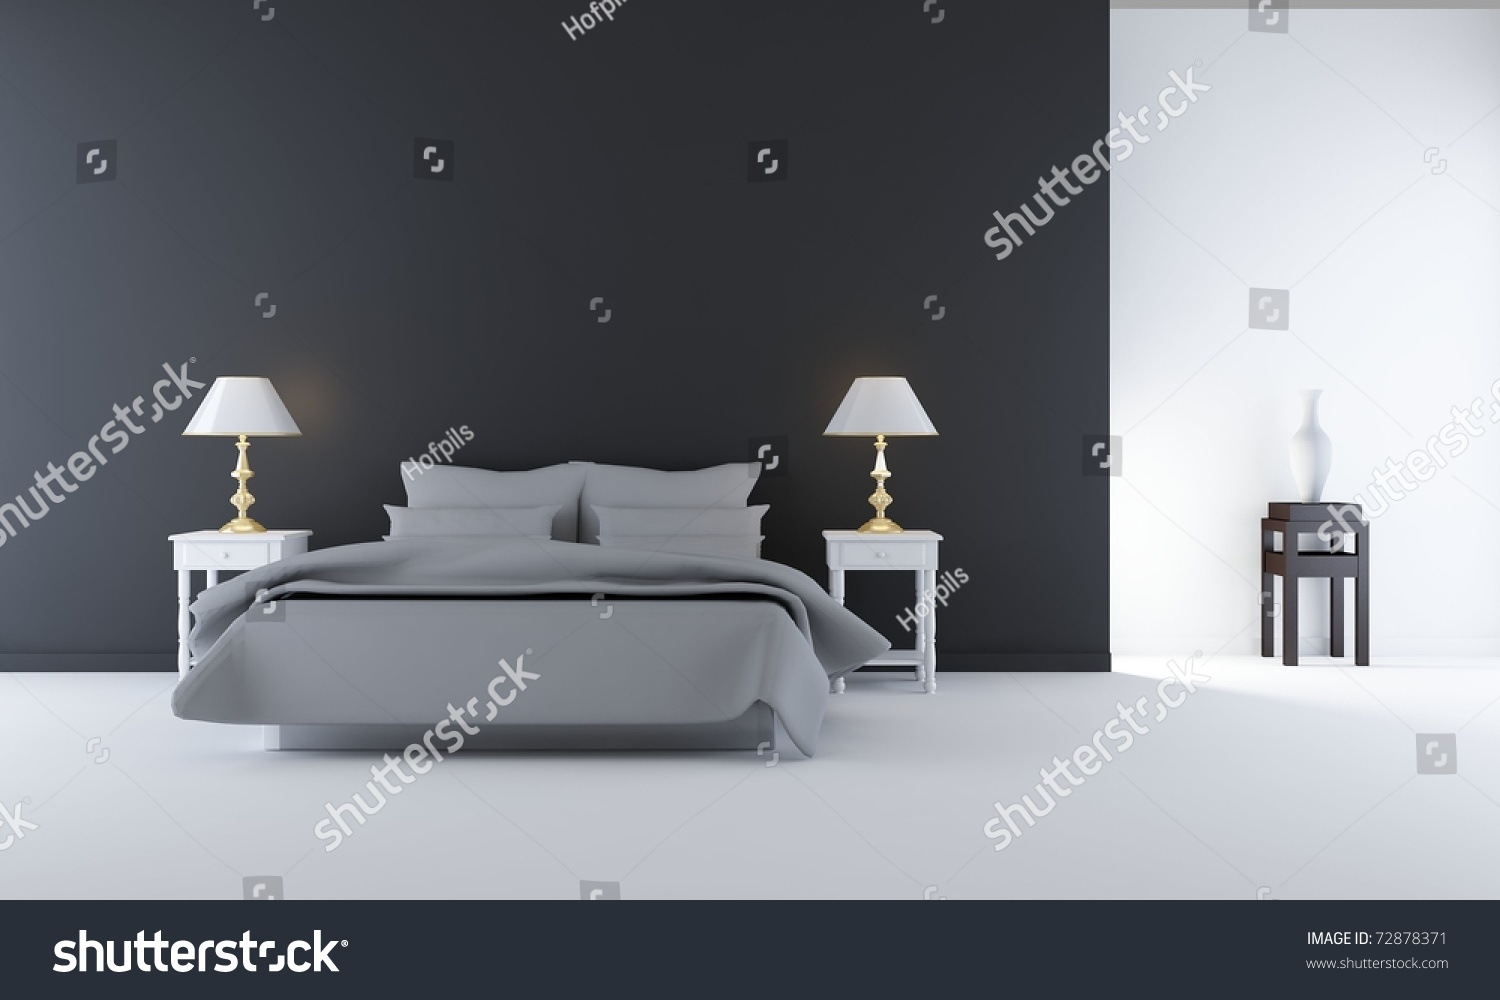 Living Room Setting Living Room Setting Simple Bedroom Scene Stock Illustration